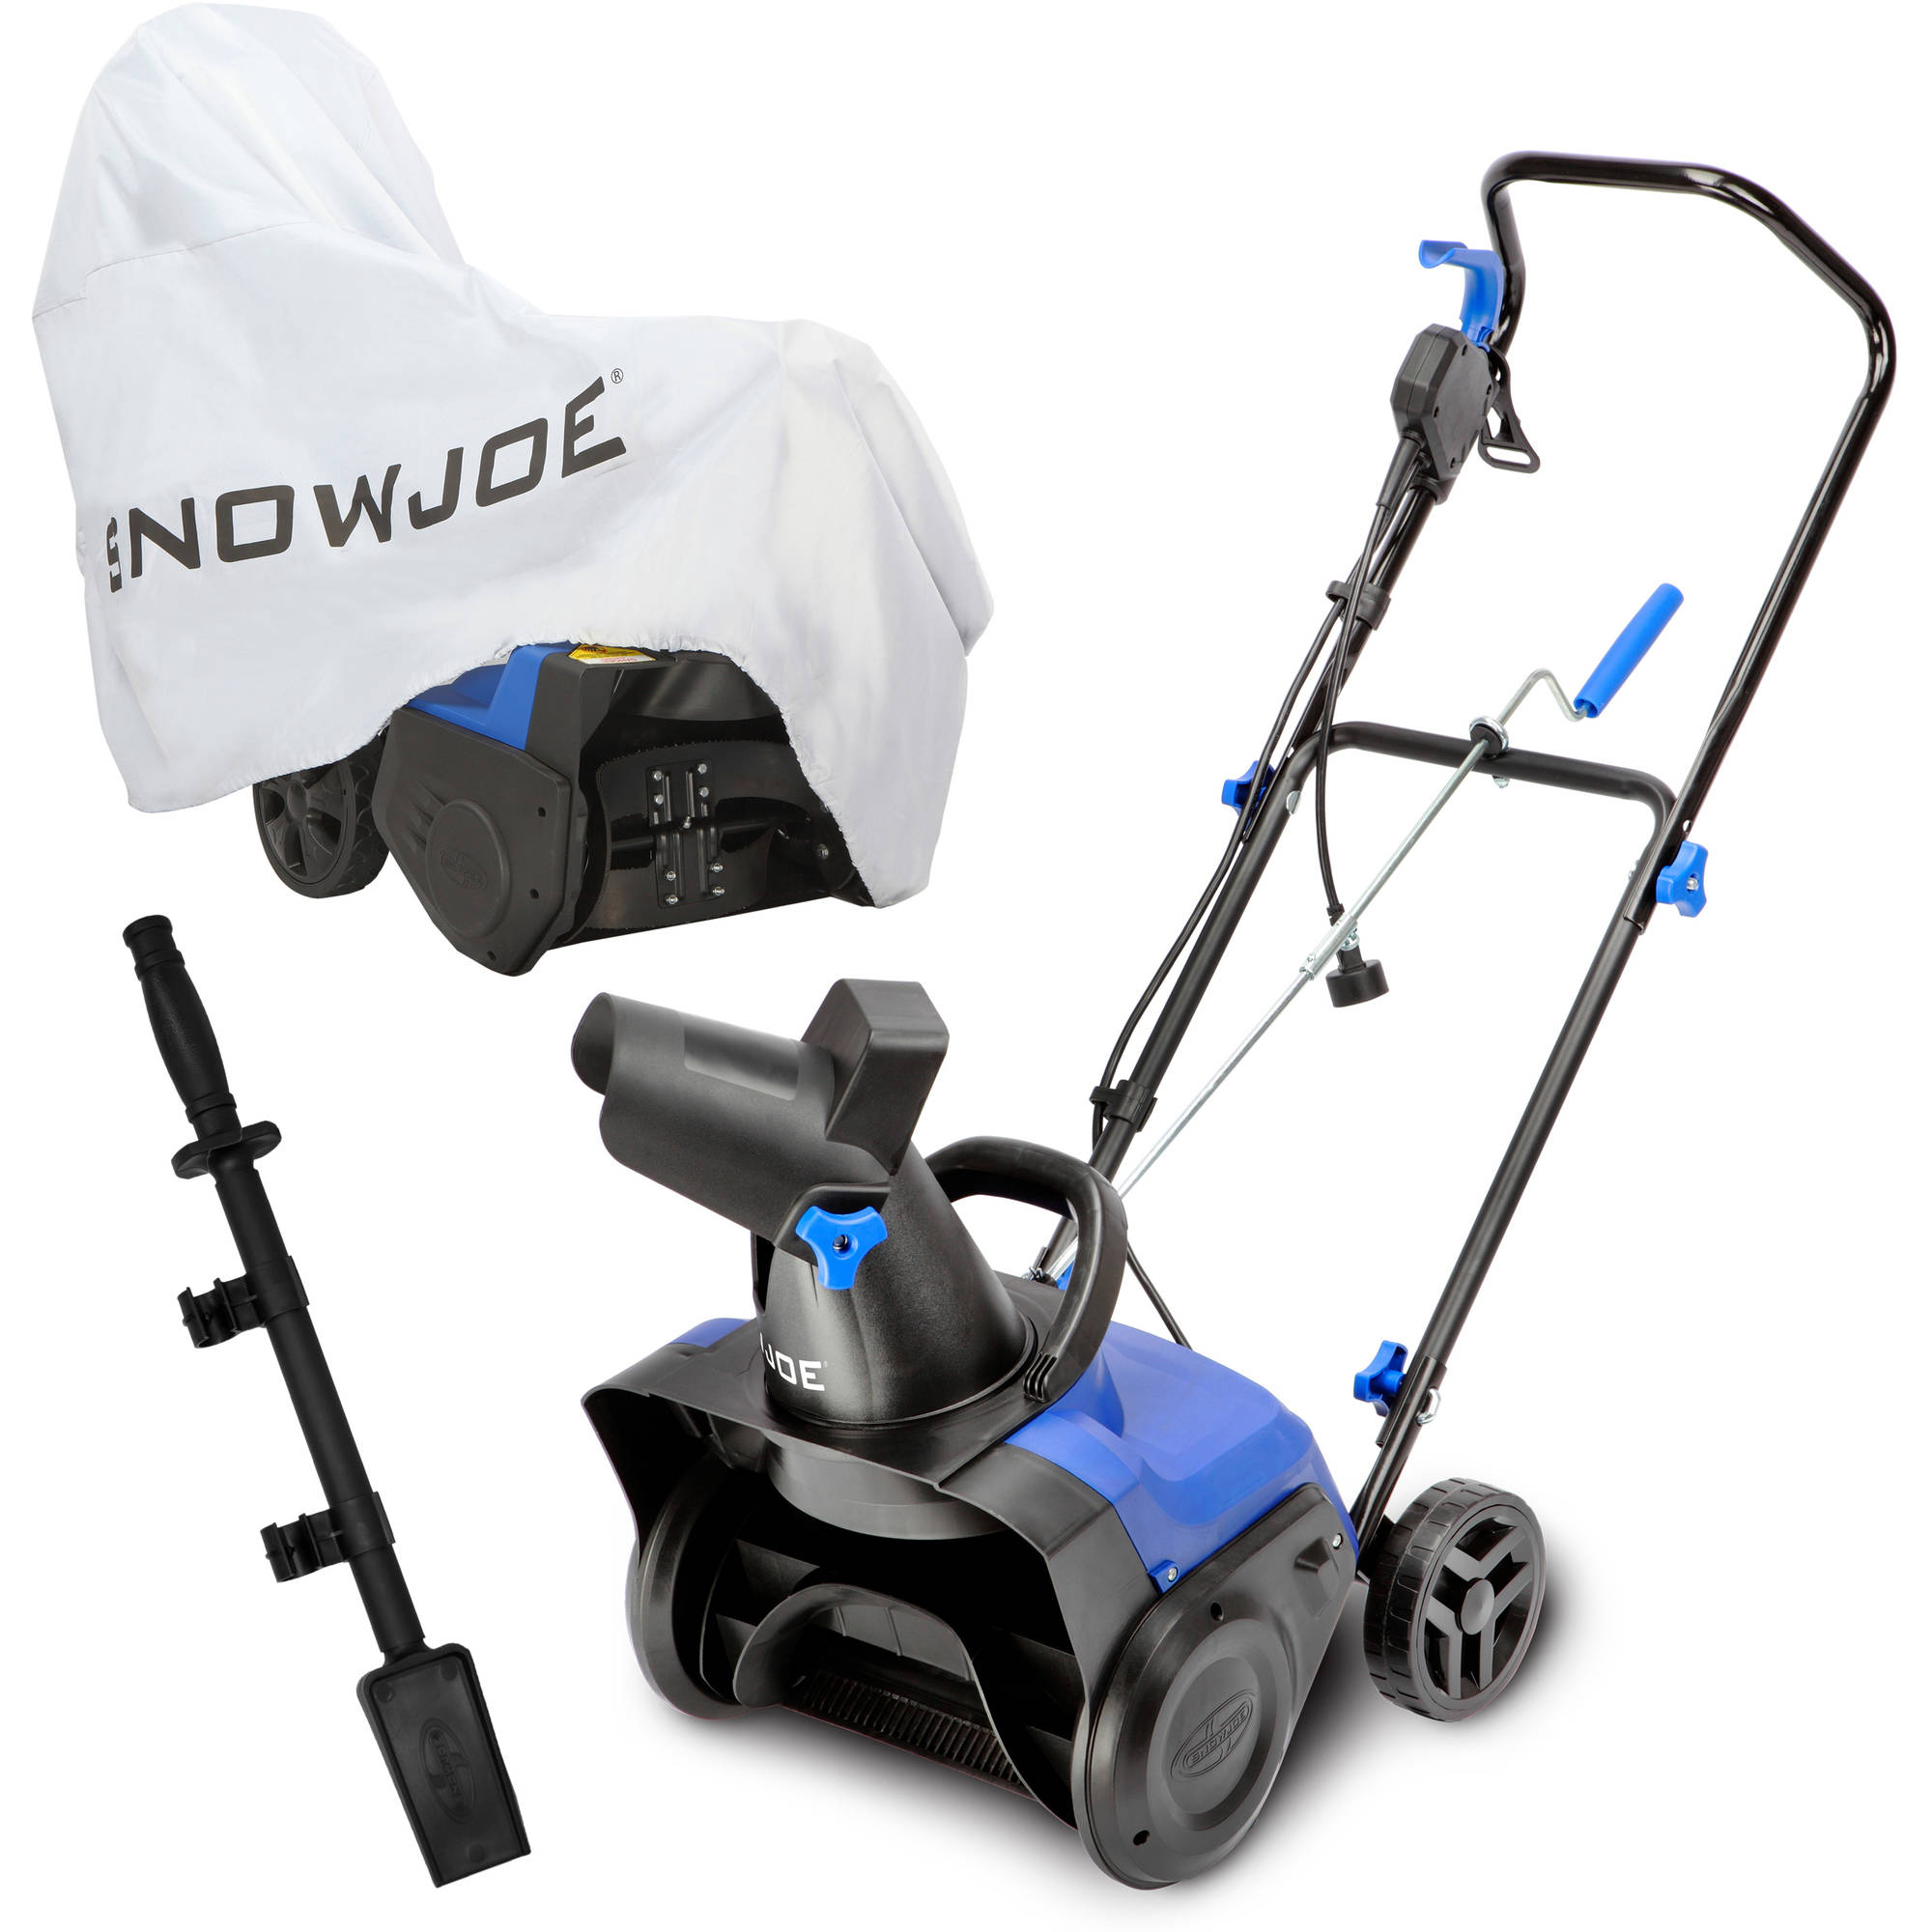 "Snow Joe 15"" 11 AMP Electric Snow Blower Bundle (Includes SJ615E, Cover, & Chute Clean-Out Tool)"